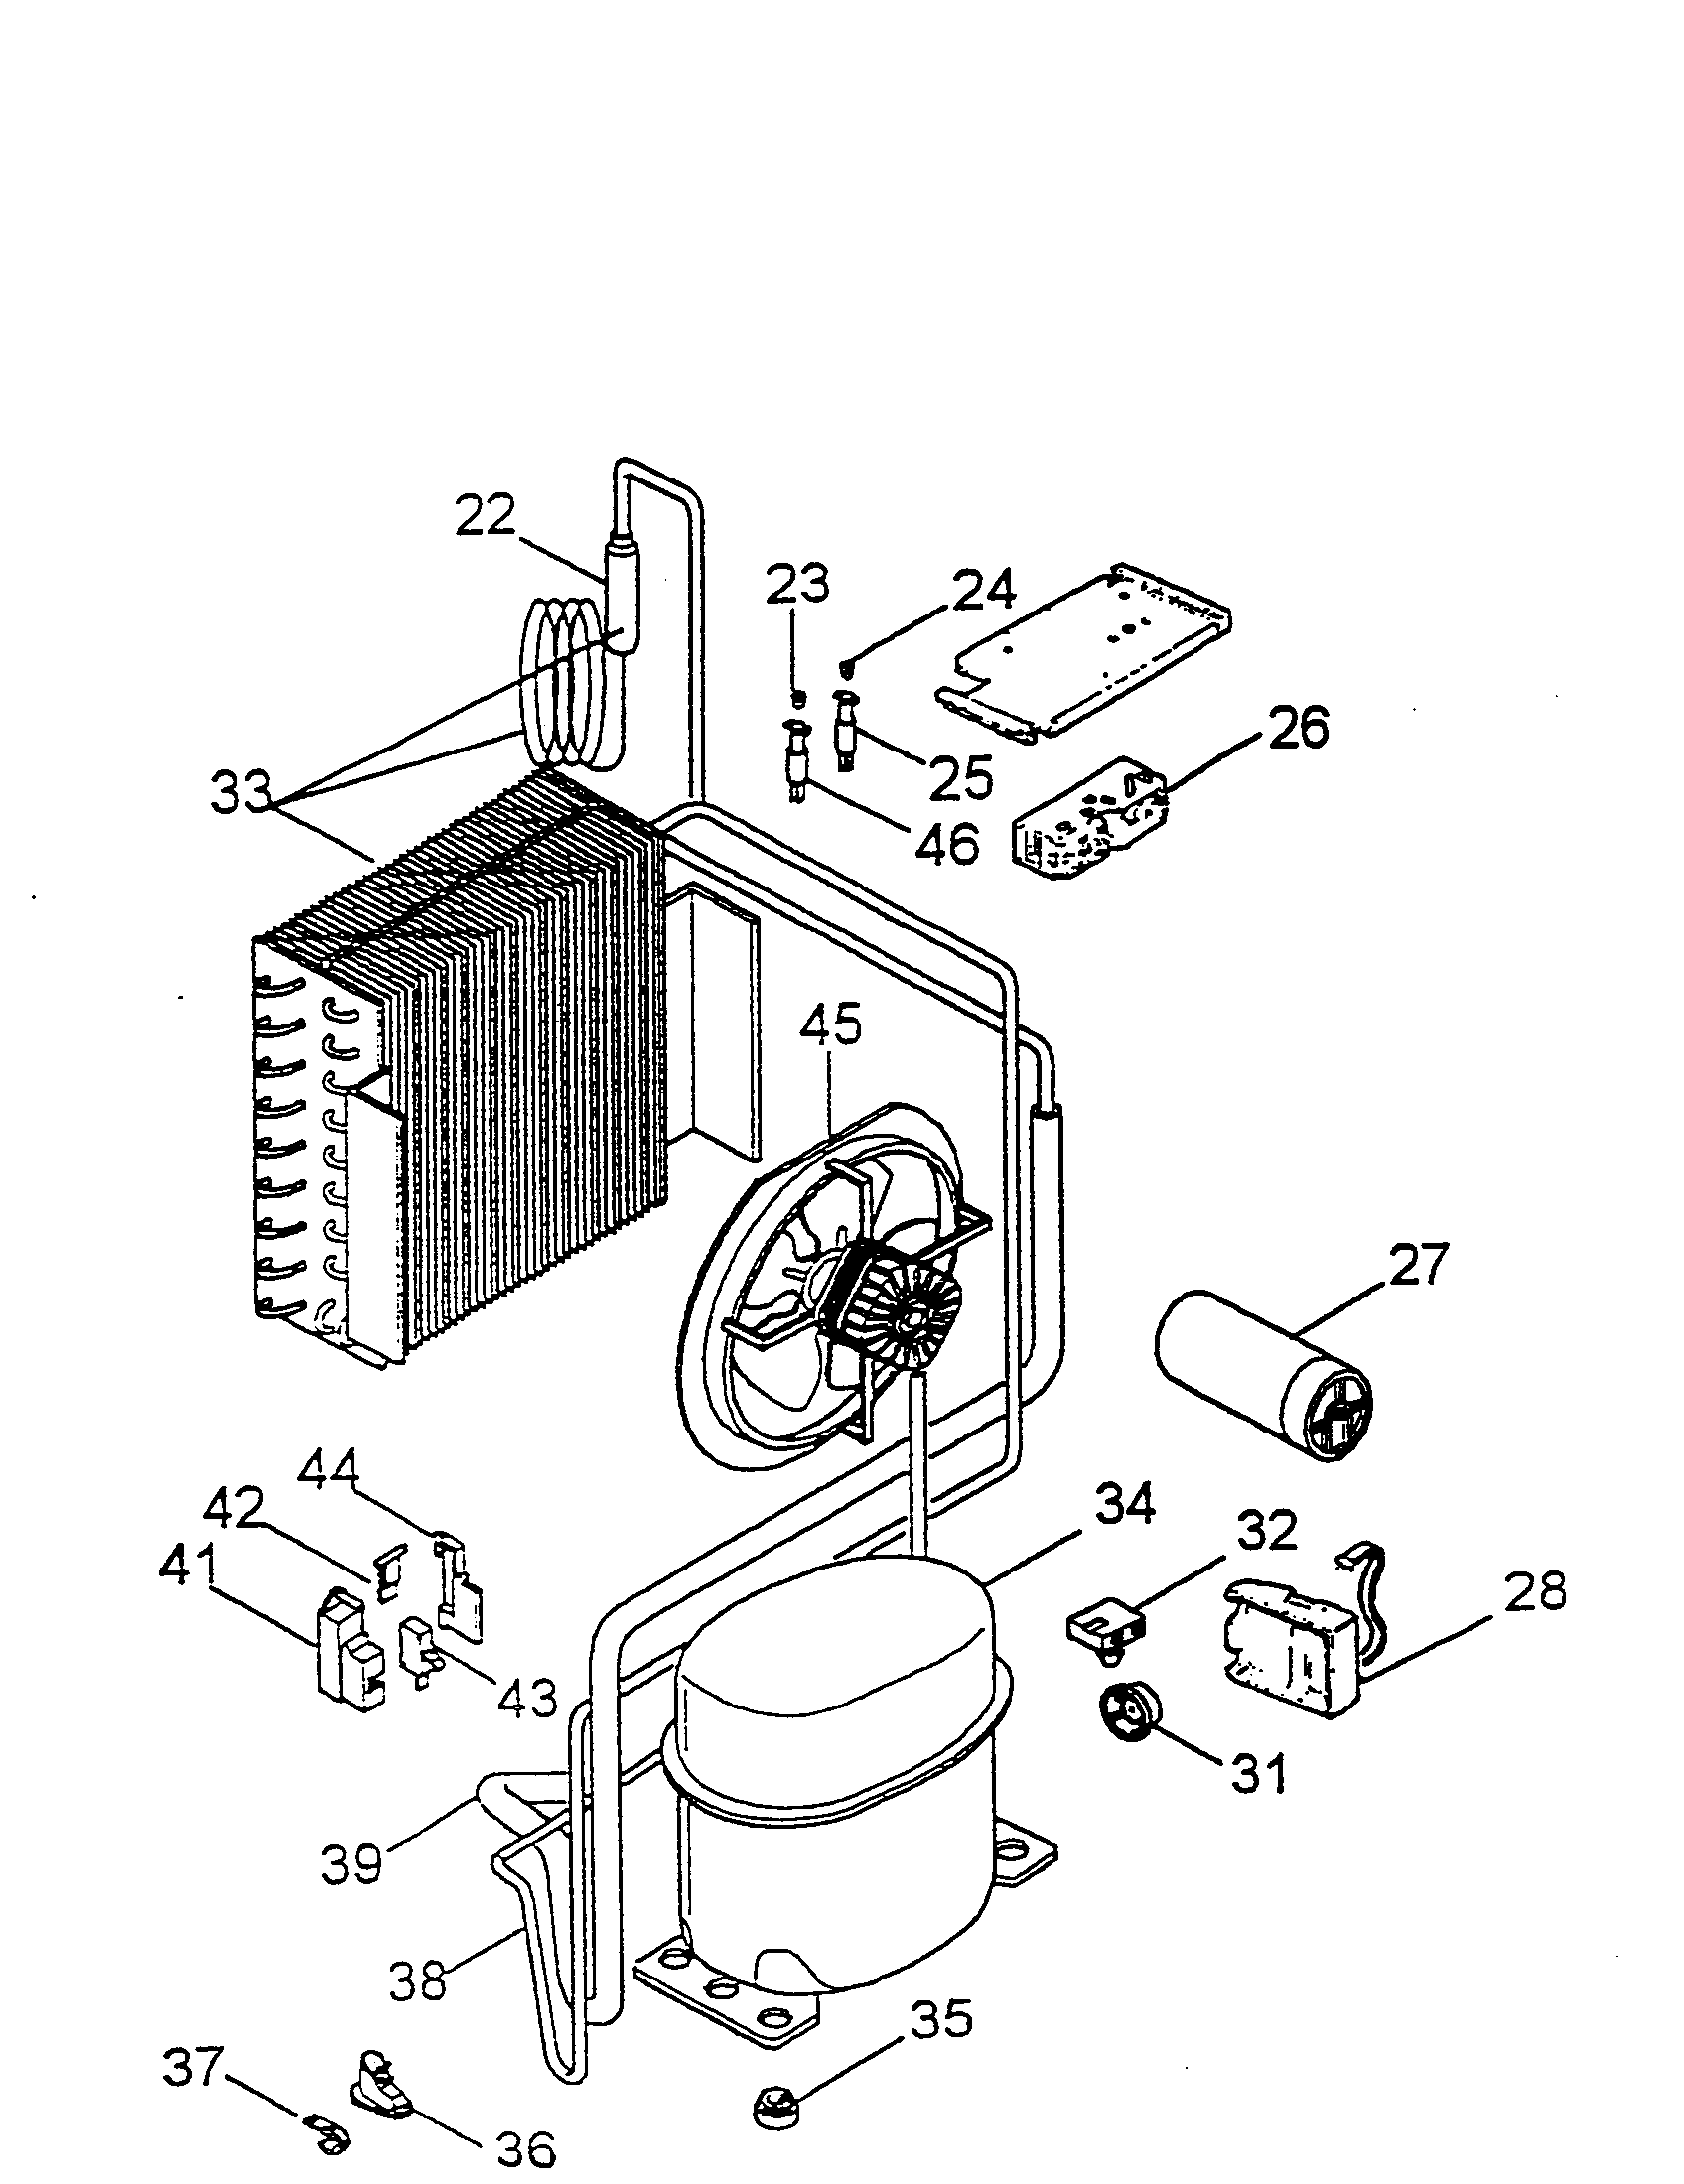 Evaporator Coil Diagram And Parts List For Delonghi